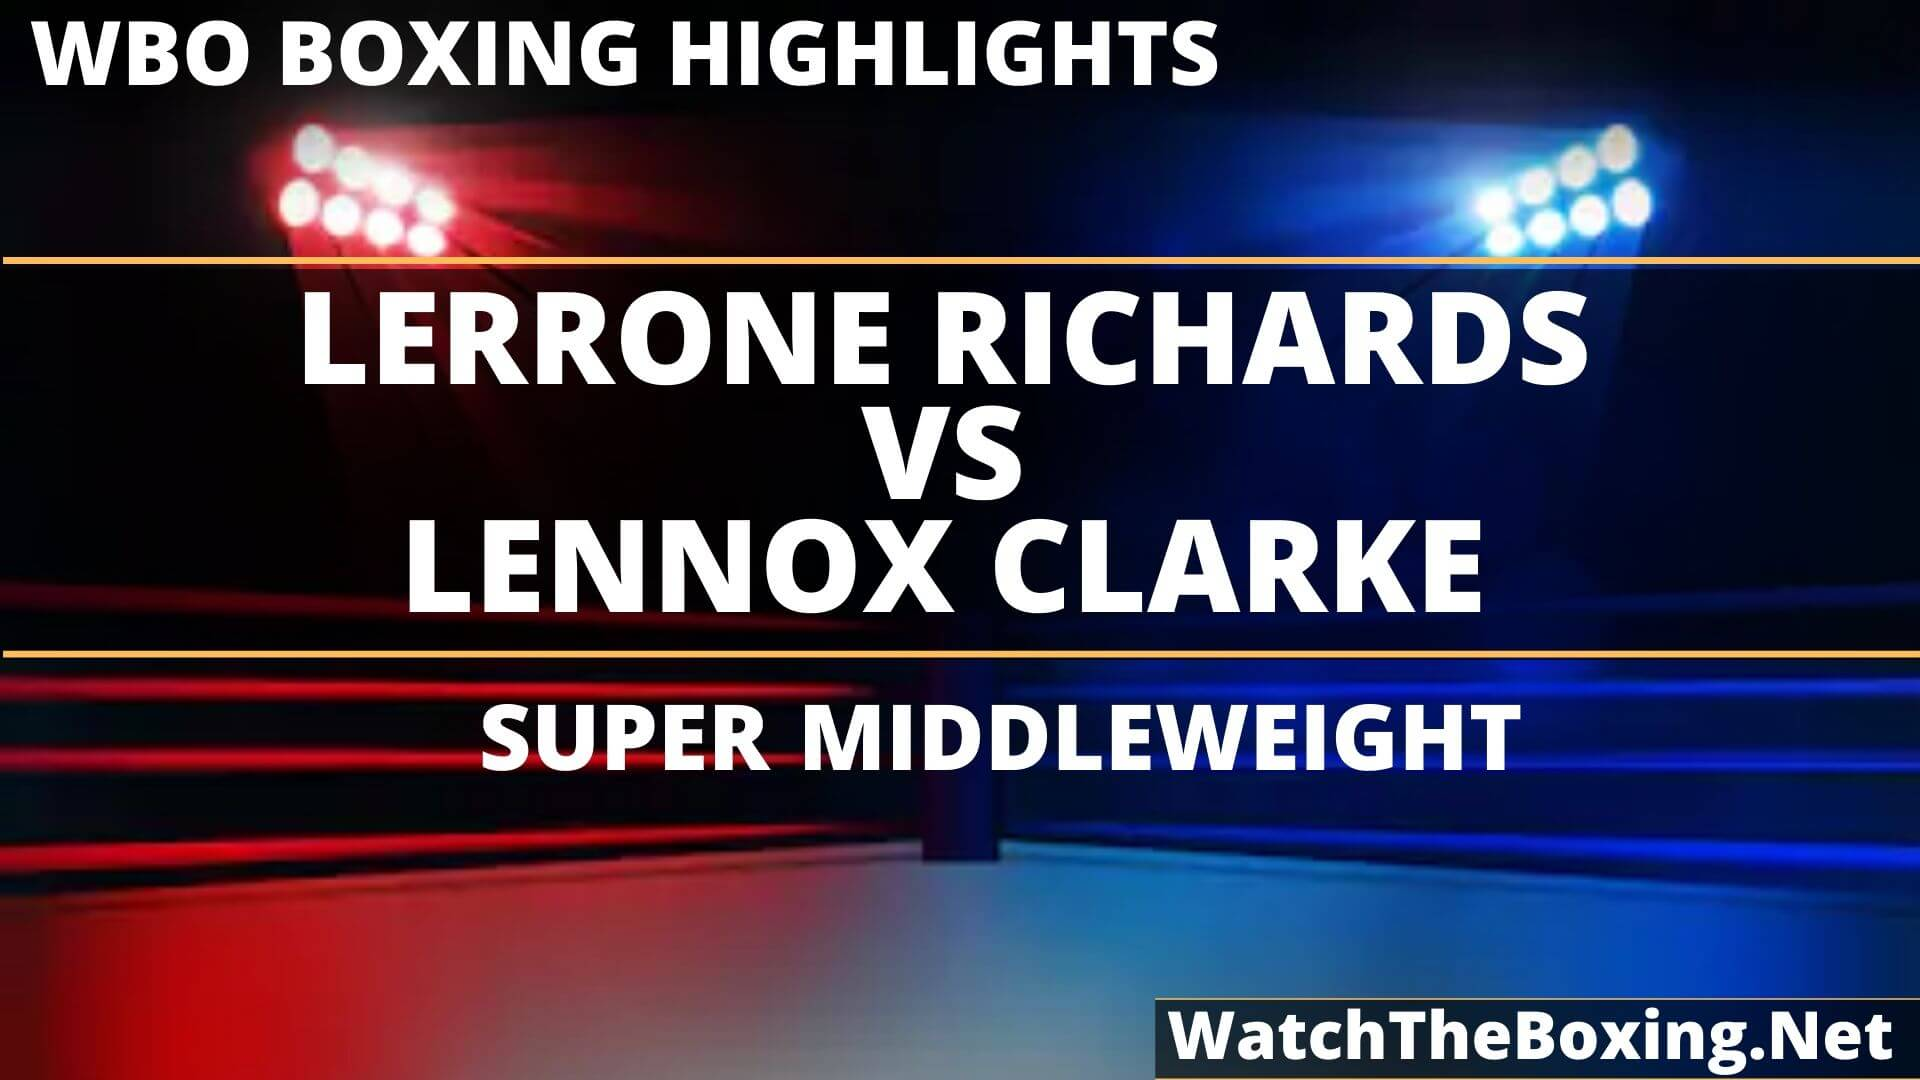 Lerrone Richards Vs Lennox Clarke Highlights 2019